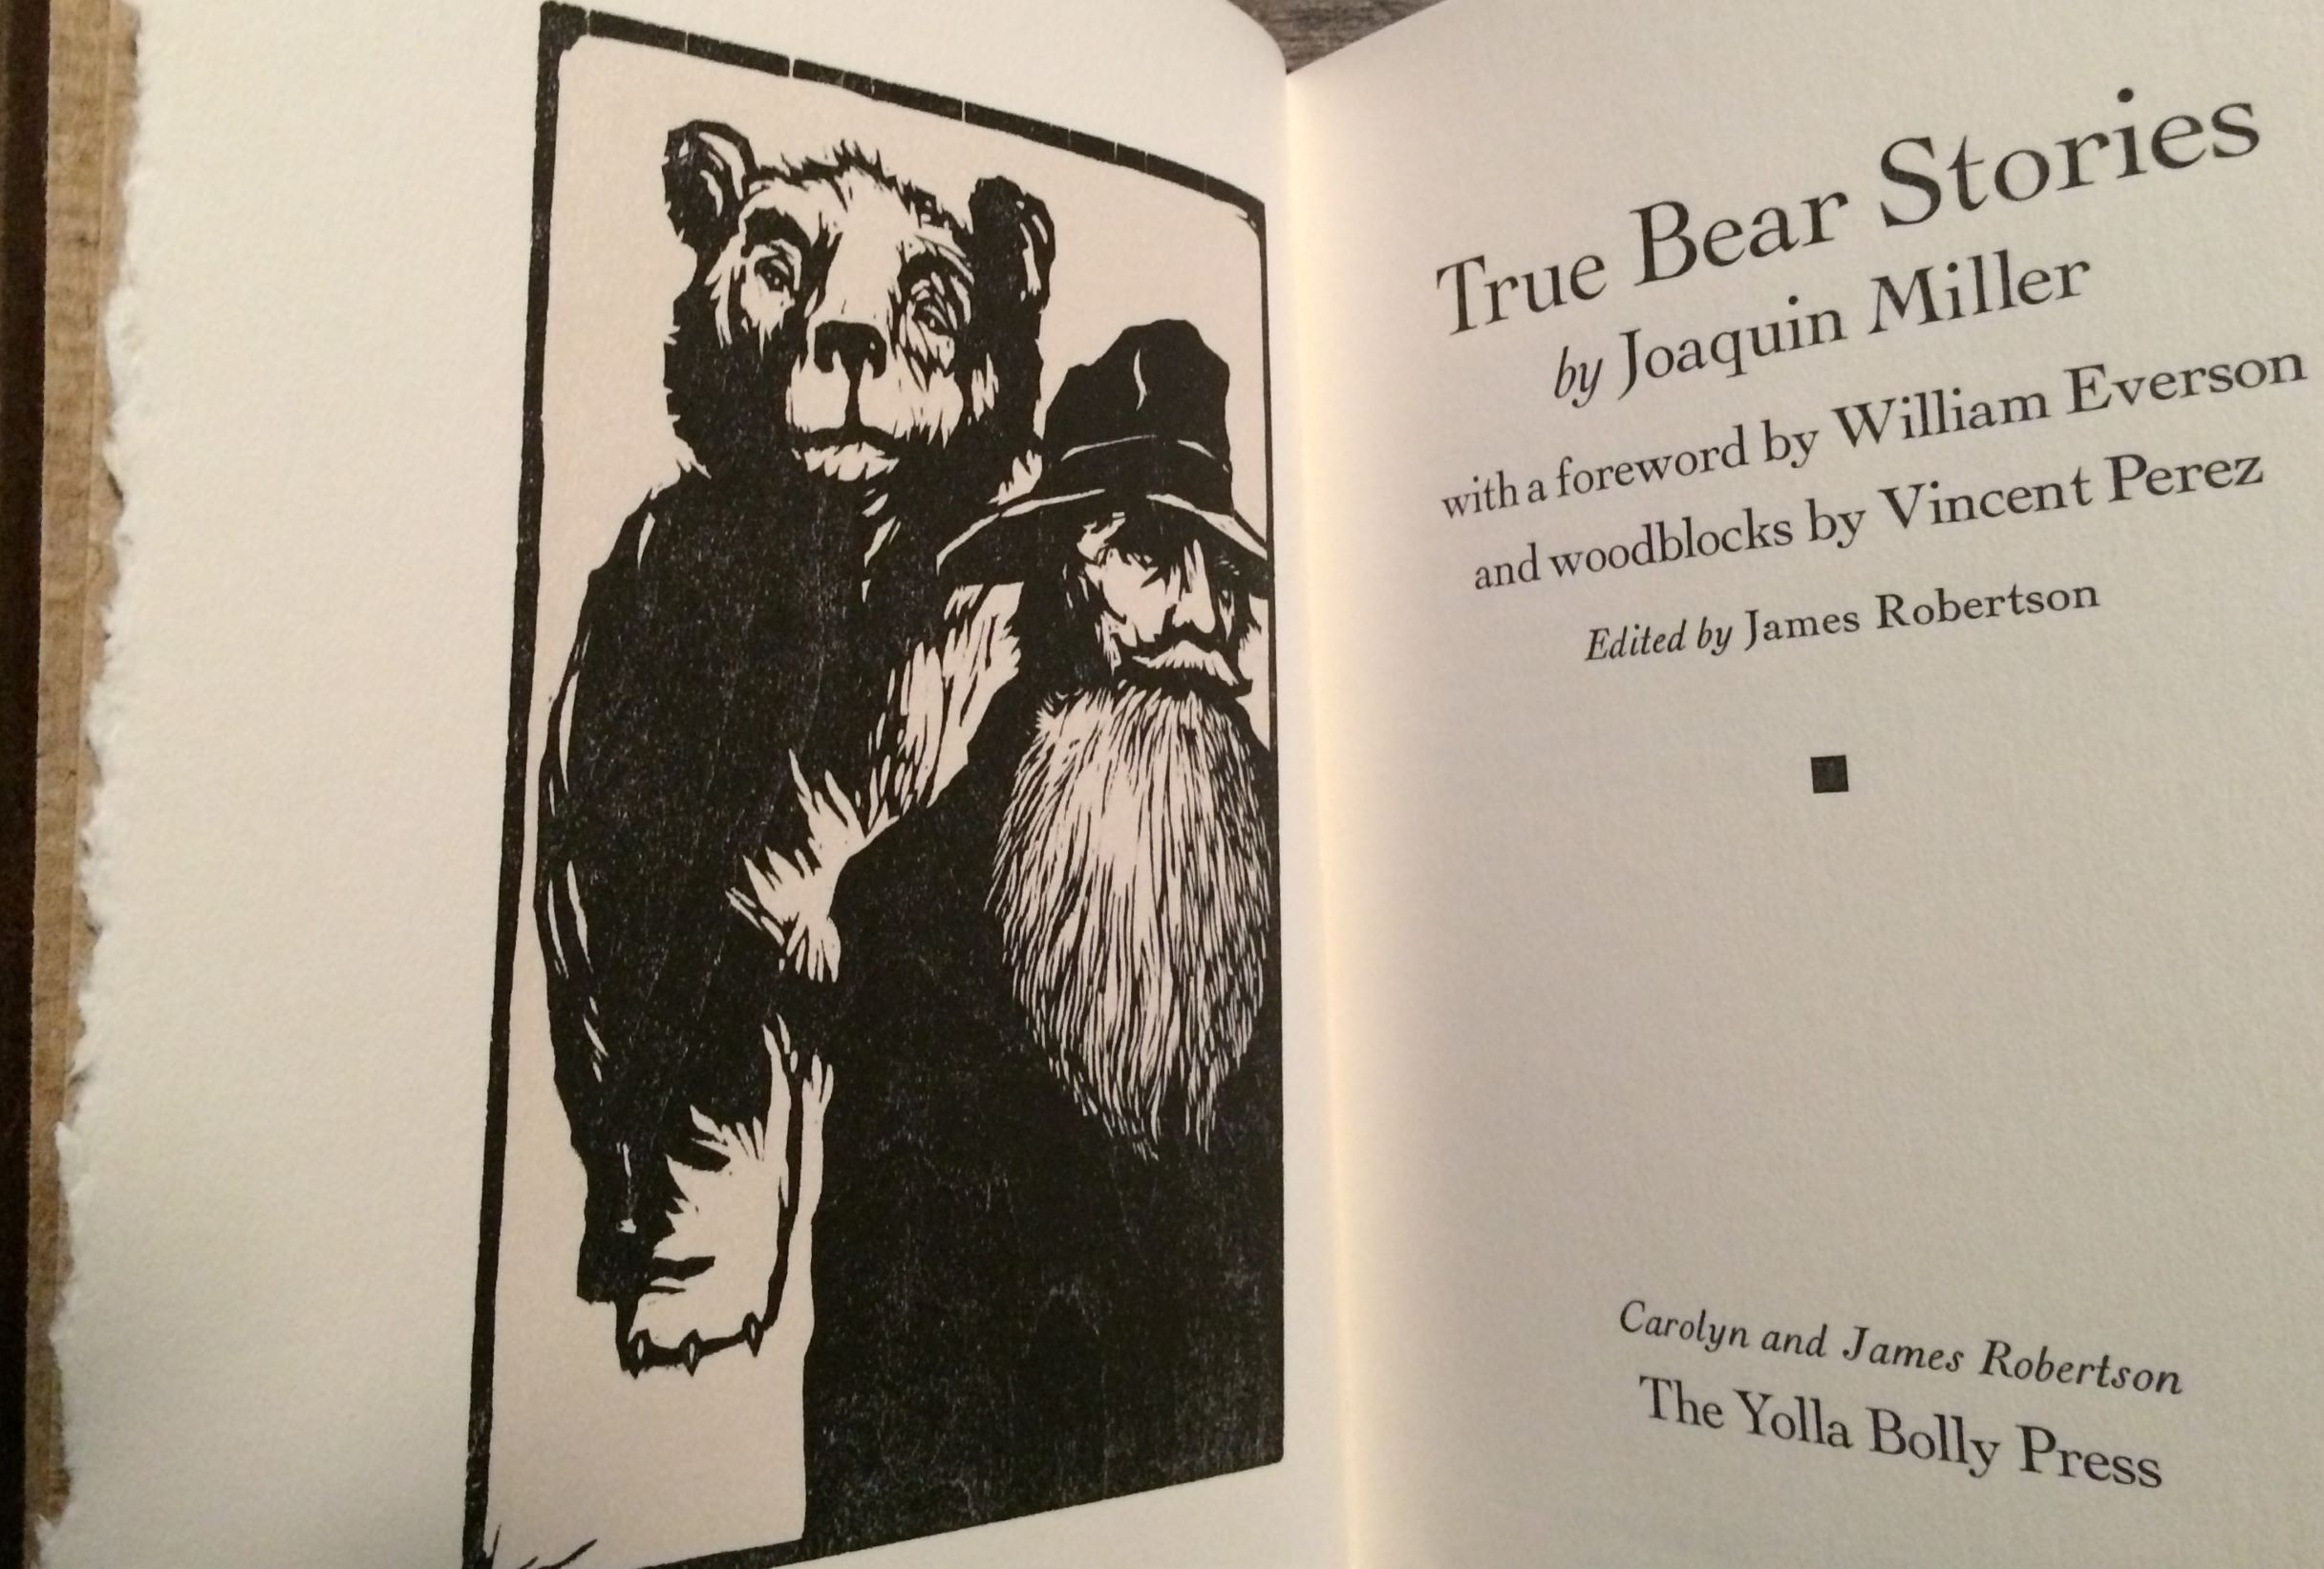 Image for True Bear Stories. With a Foreword by William Everson and woodblocks by Vincent Perez. Edited by James Robertson.